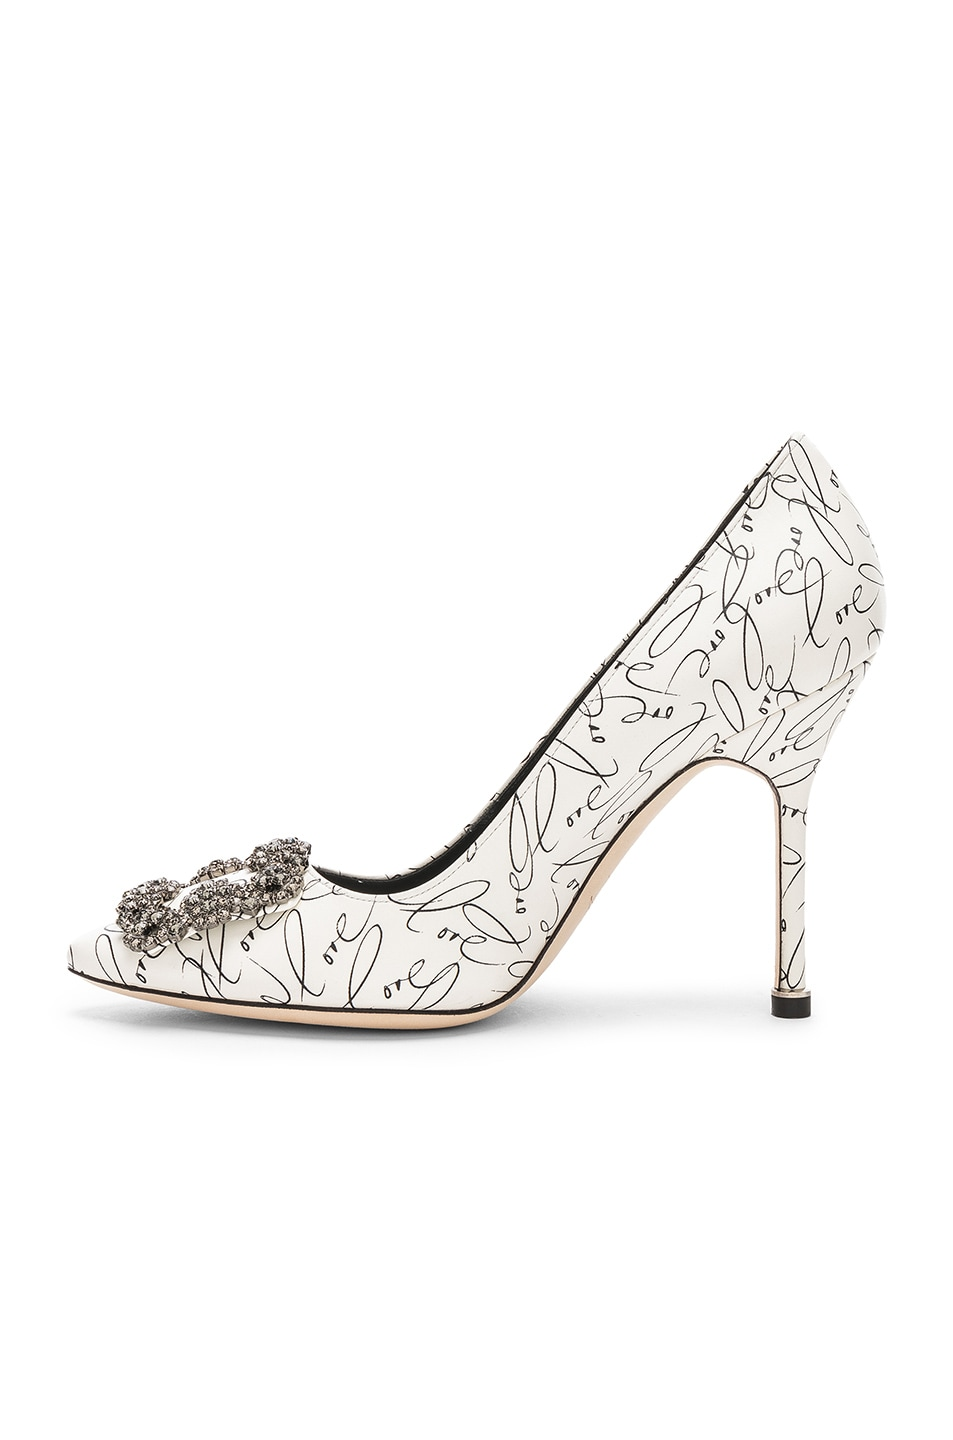 Image 5 of Manolo Blahnik 105mm A Decade of Love Hangisi Heel in White